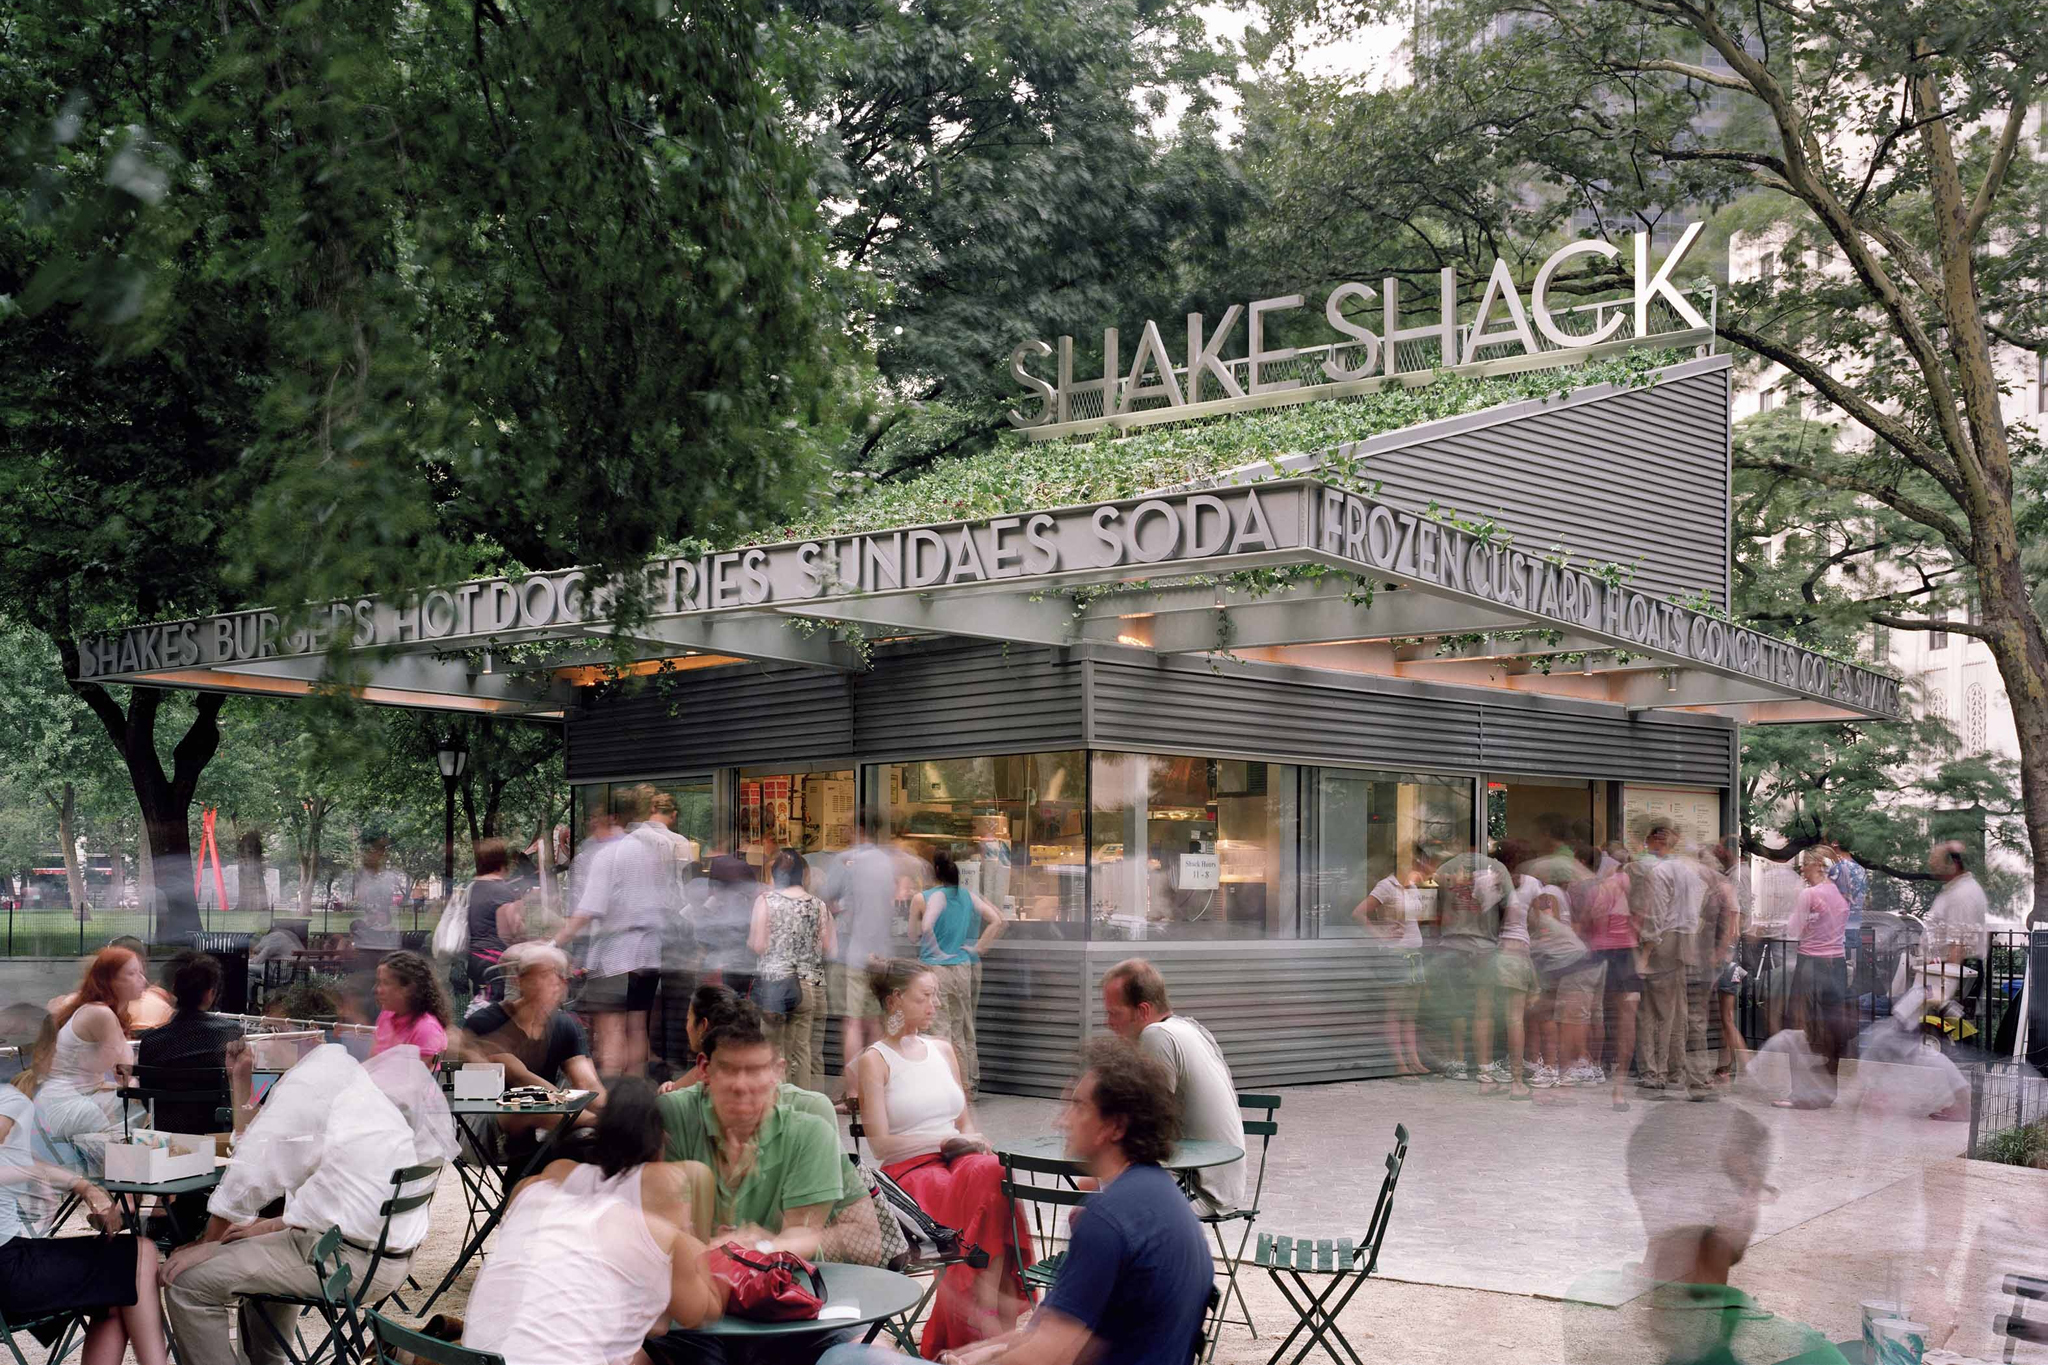 The Madison Square Park Shake Shack returns Wednesday with new burgers and beer